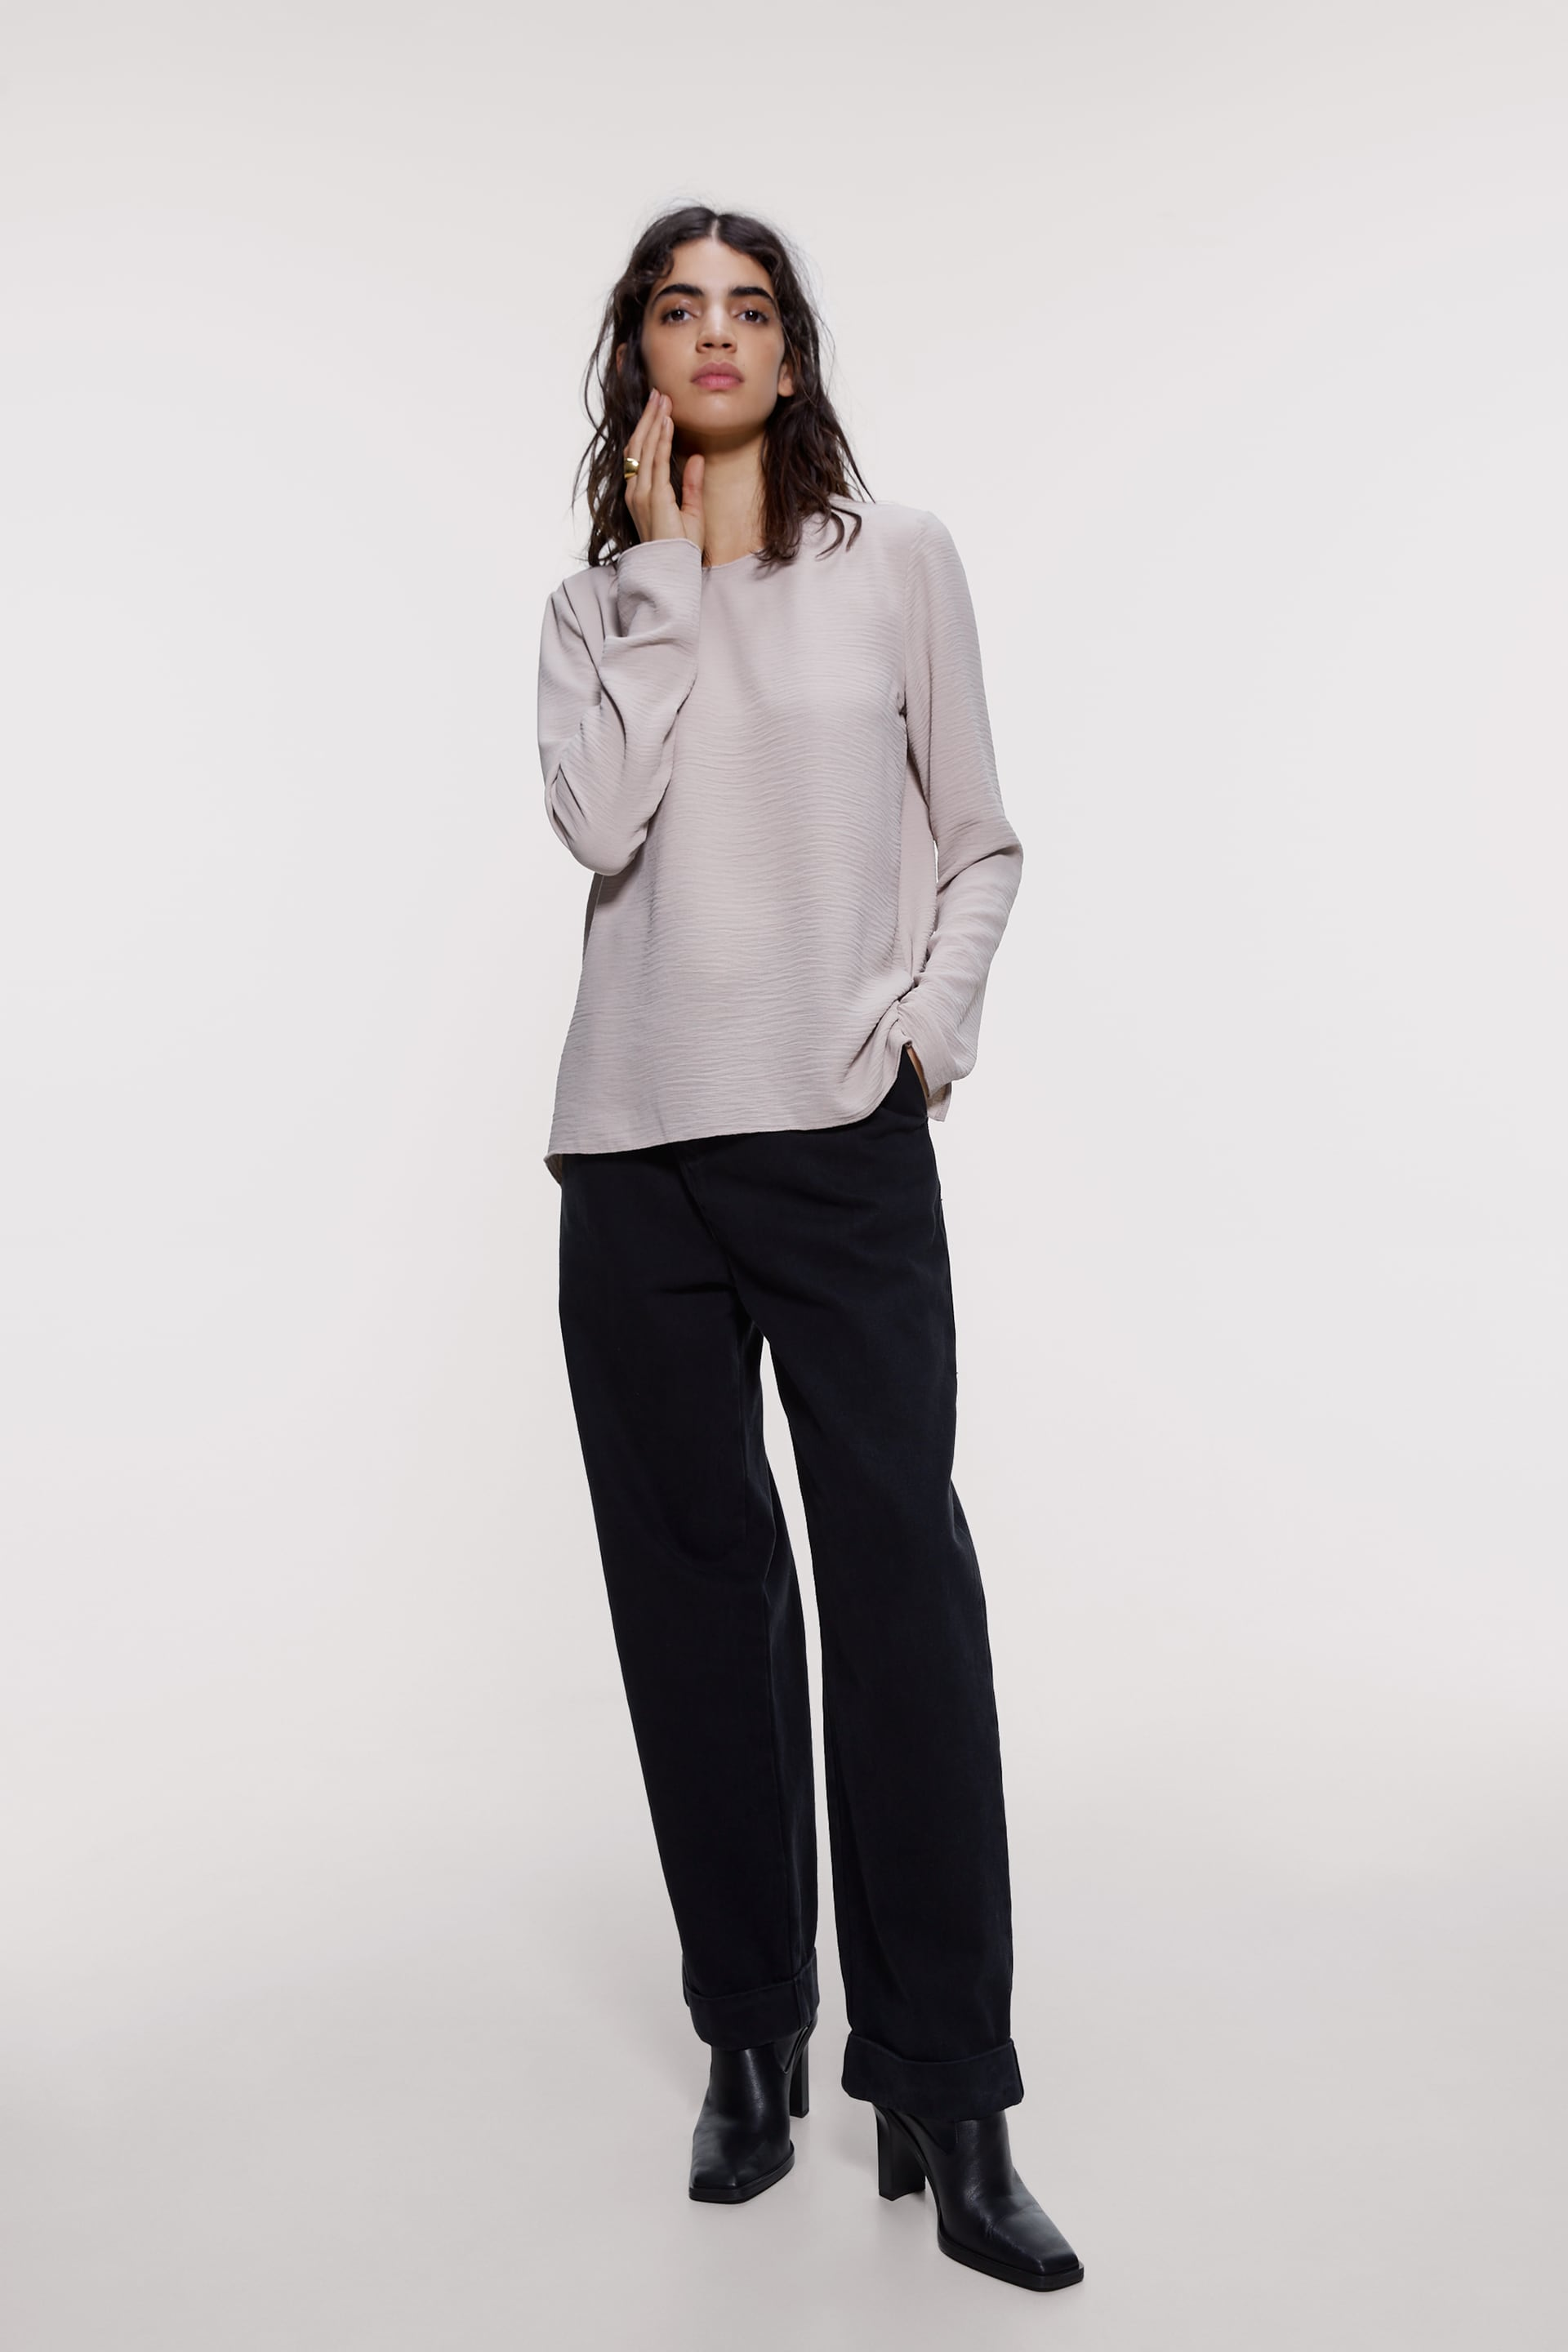 CREASED-EFFECT TOP